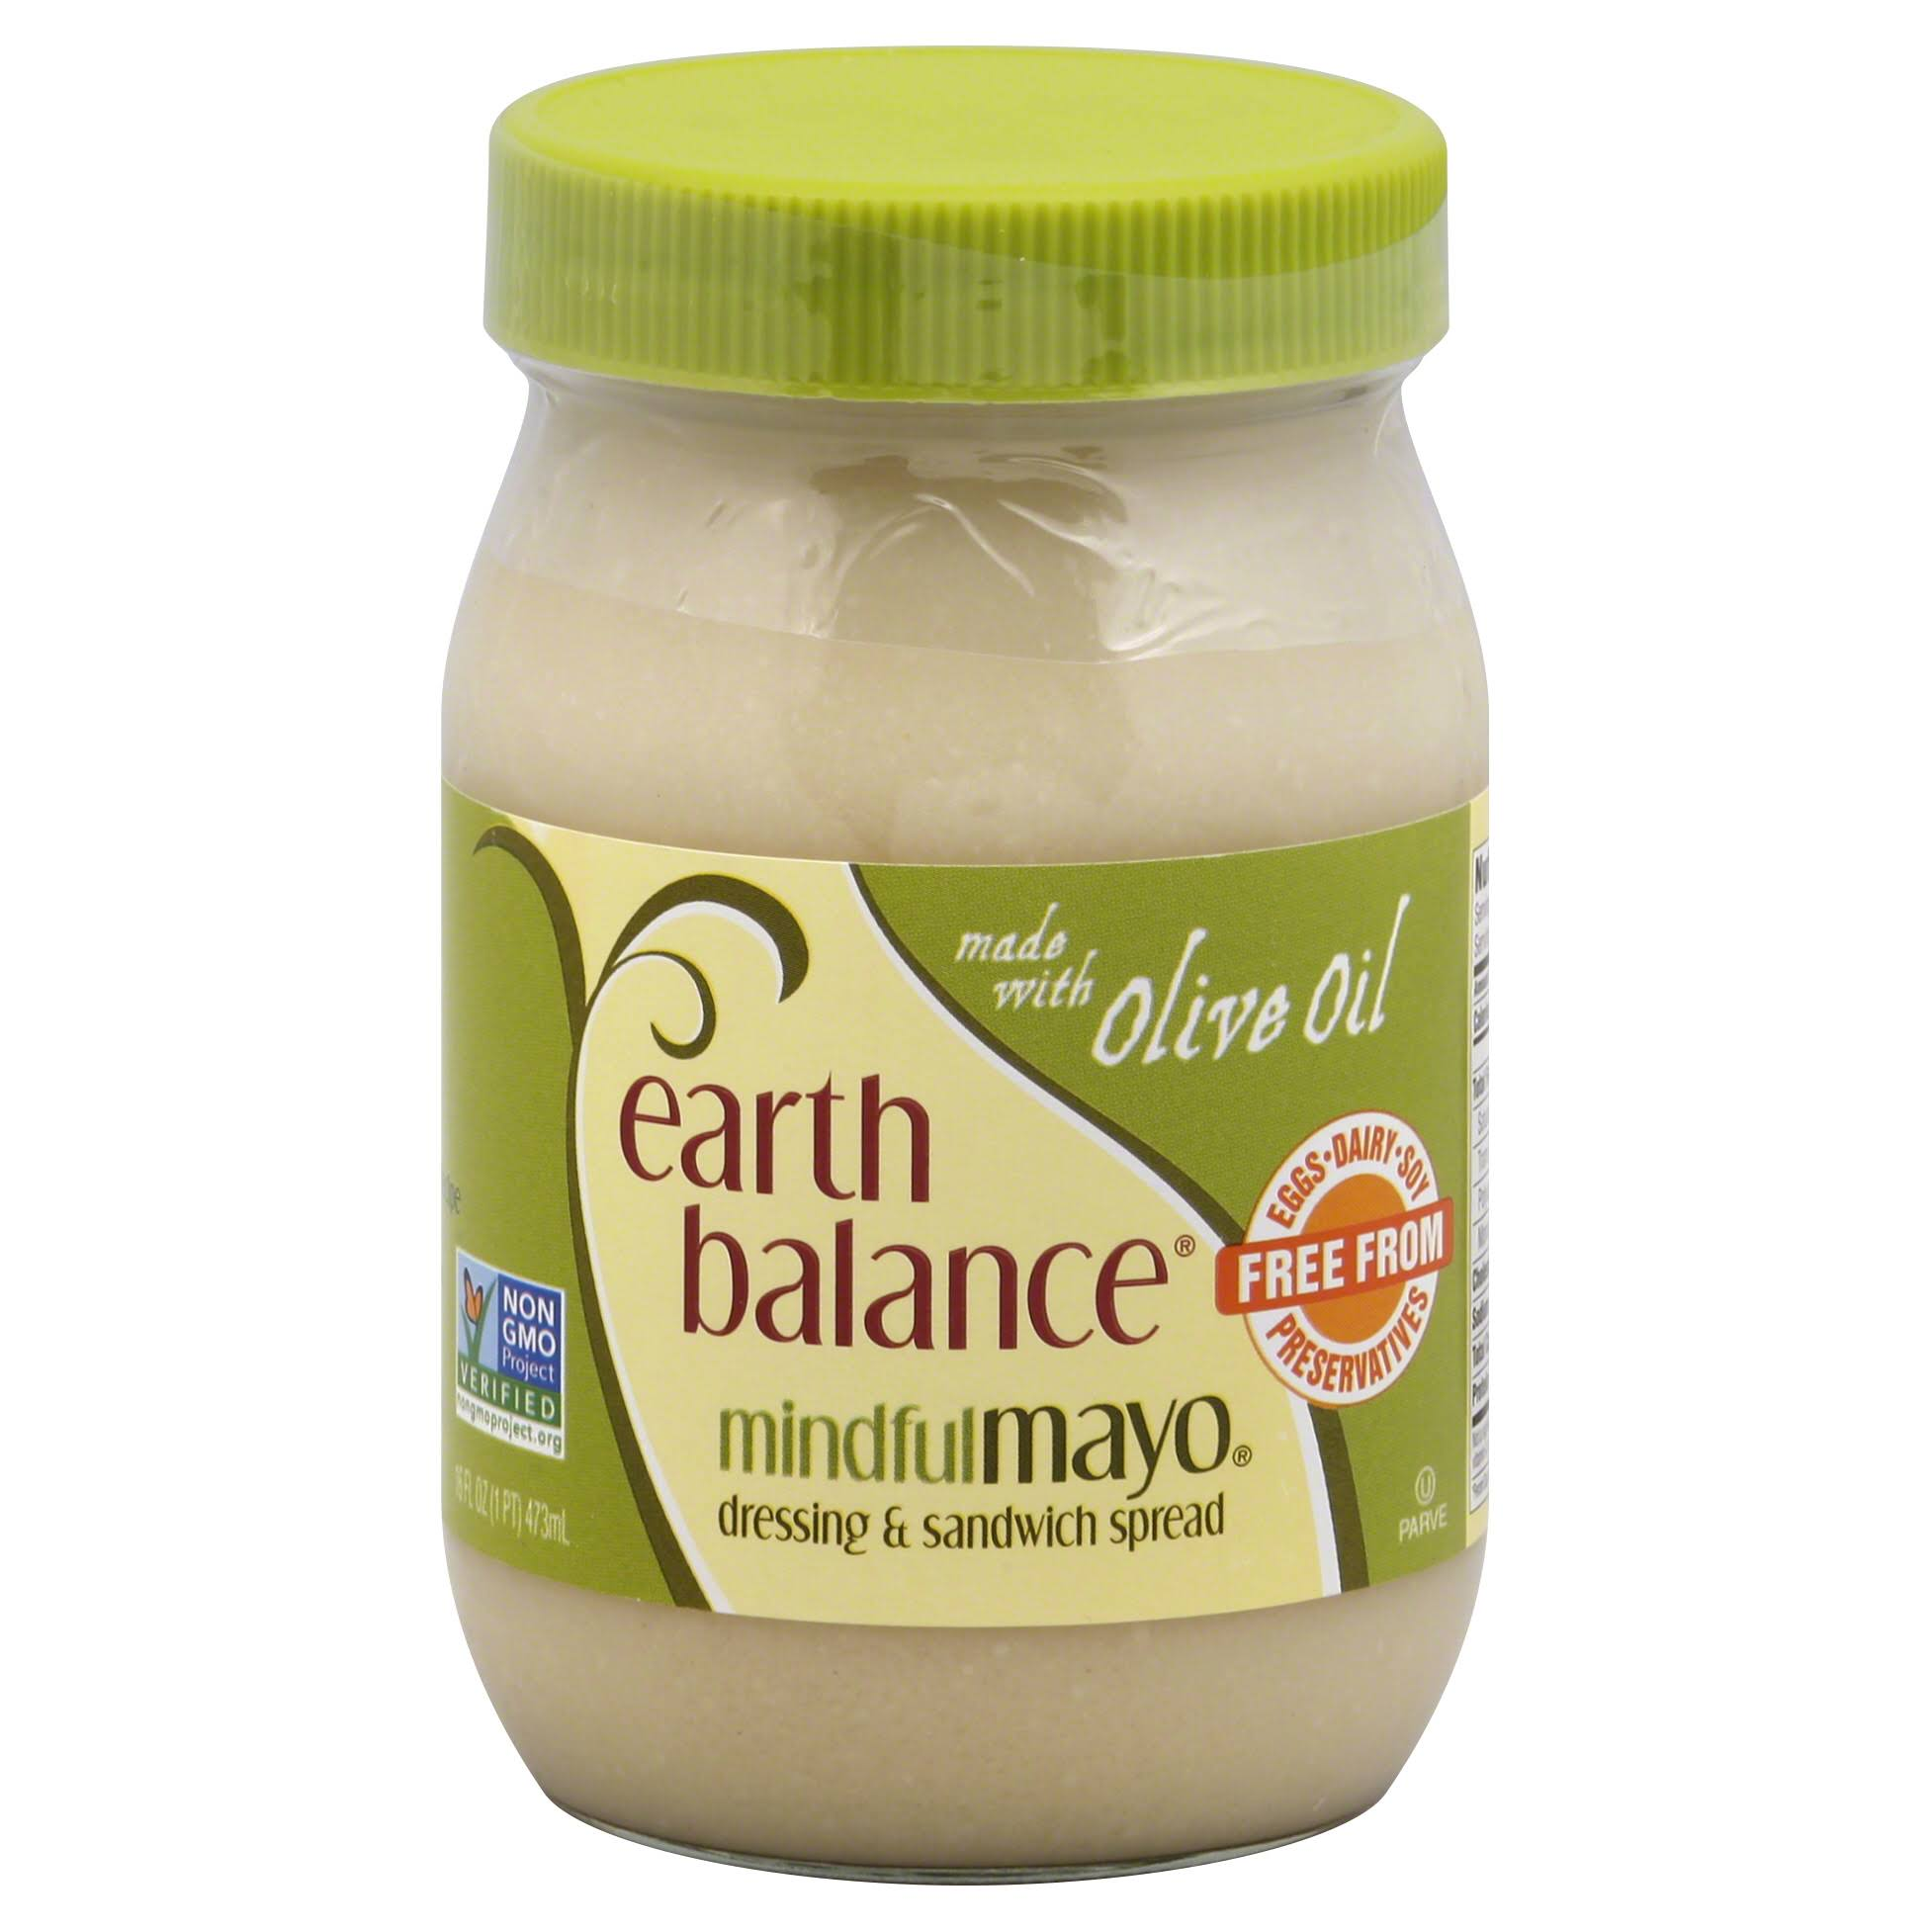 Earth Balance Mindful Mayo Dressing & Sandwich Spread, Made with Olive Oil - 16 fl oz